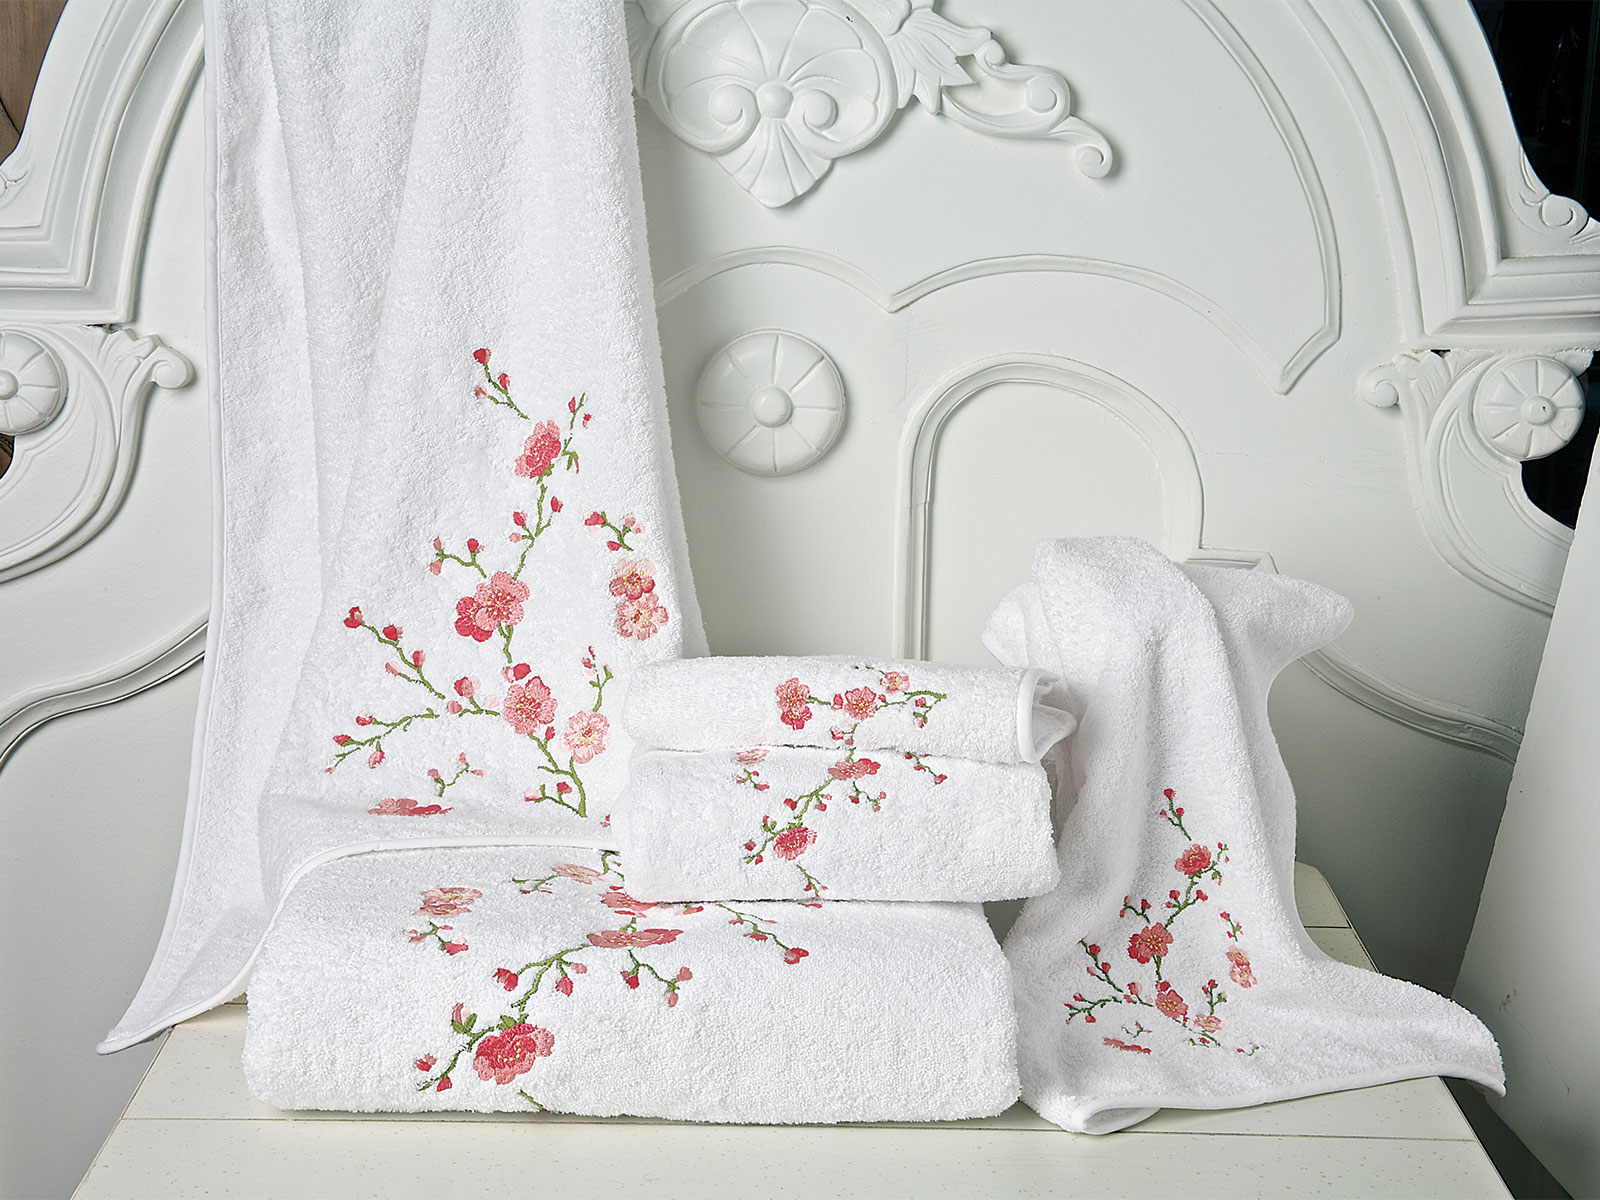 Very Cherry. 100% Turkish cotton terry is as legendary as the beauty of richly embroidered cherry blossoms. 600 g/m2, nicely taped all around.